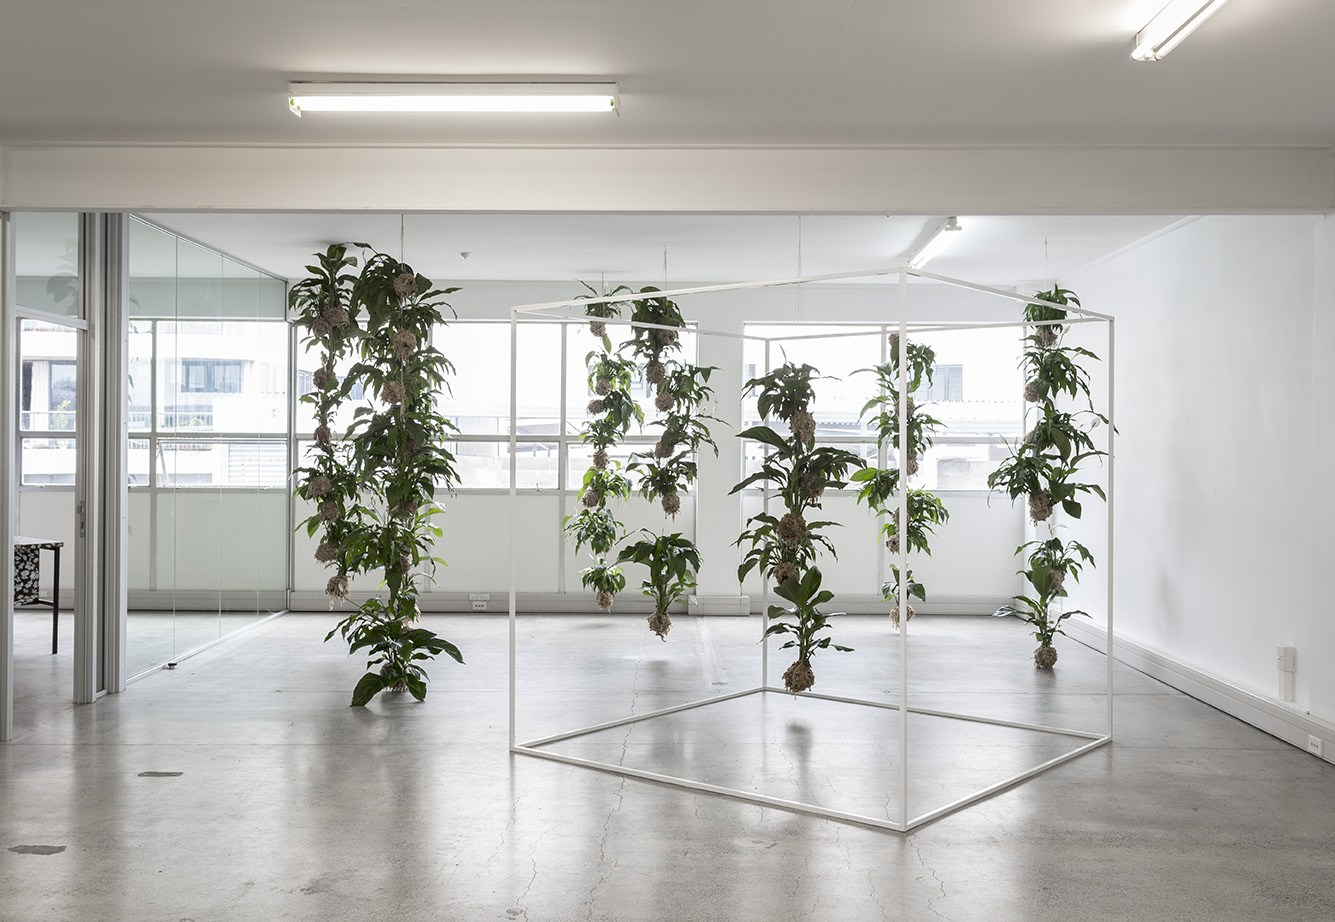 78 cubic meters between the windows and the steel beam, 2017,  Spathiphyllum, string, moss, soil, microbes, aluminium